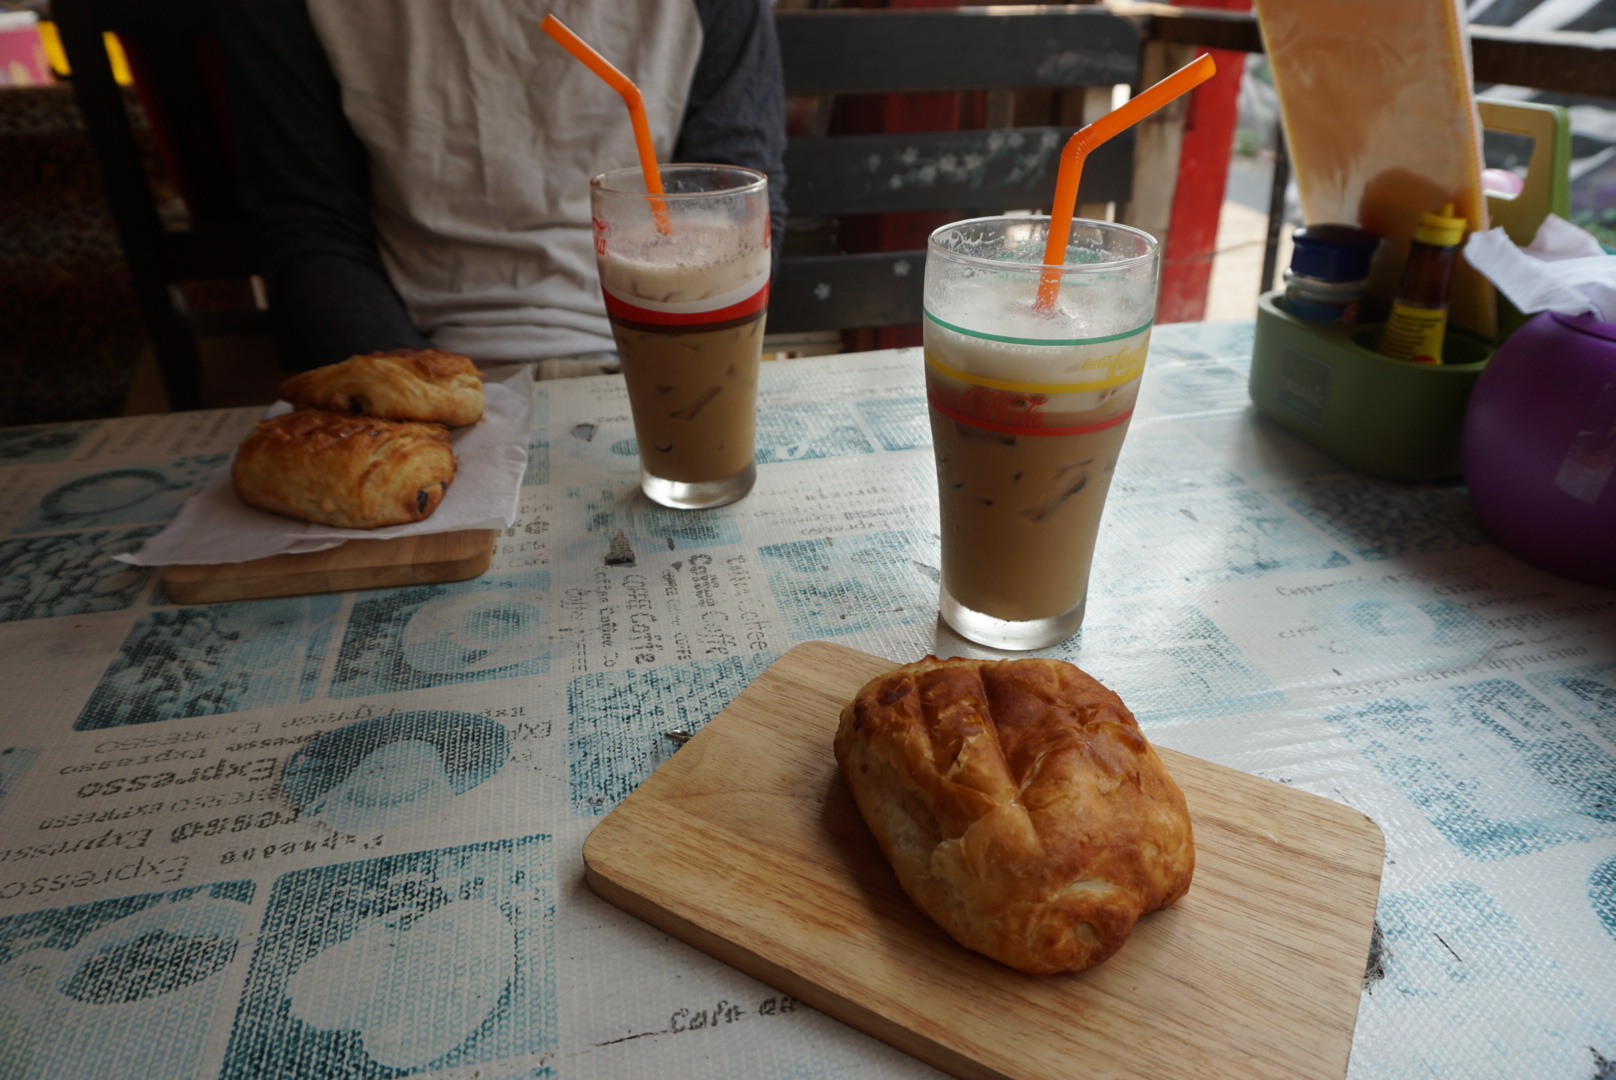 Iced Cappuccinos and croissants from Mickey's